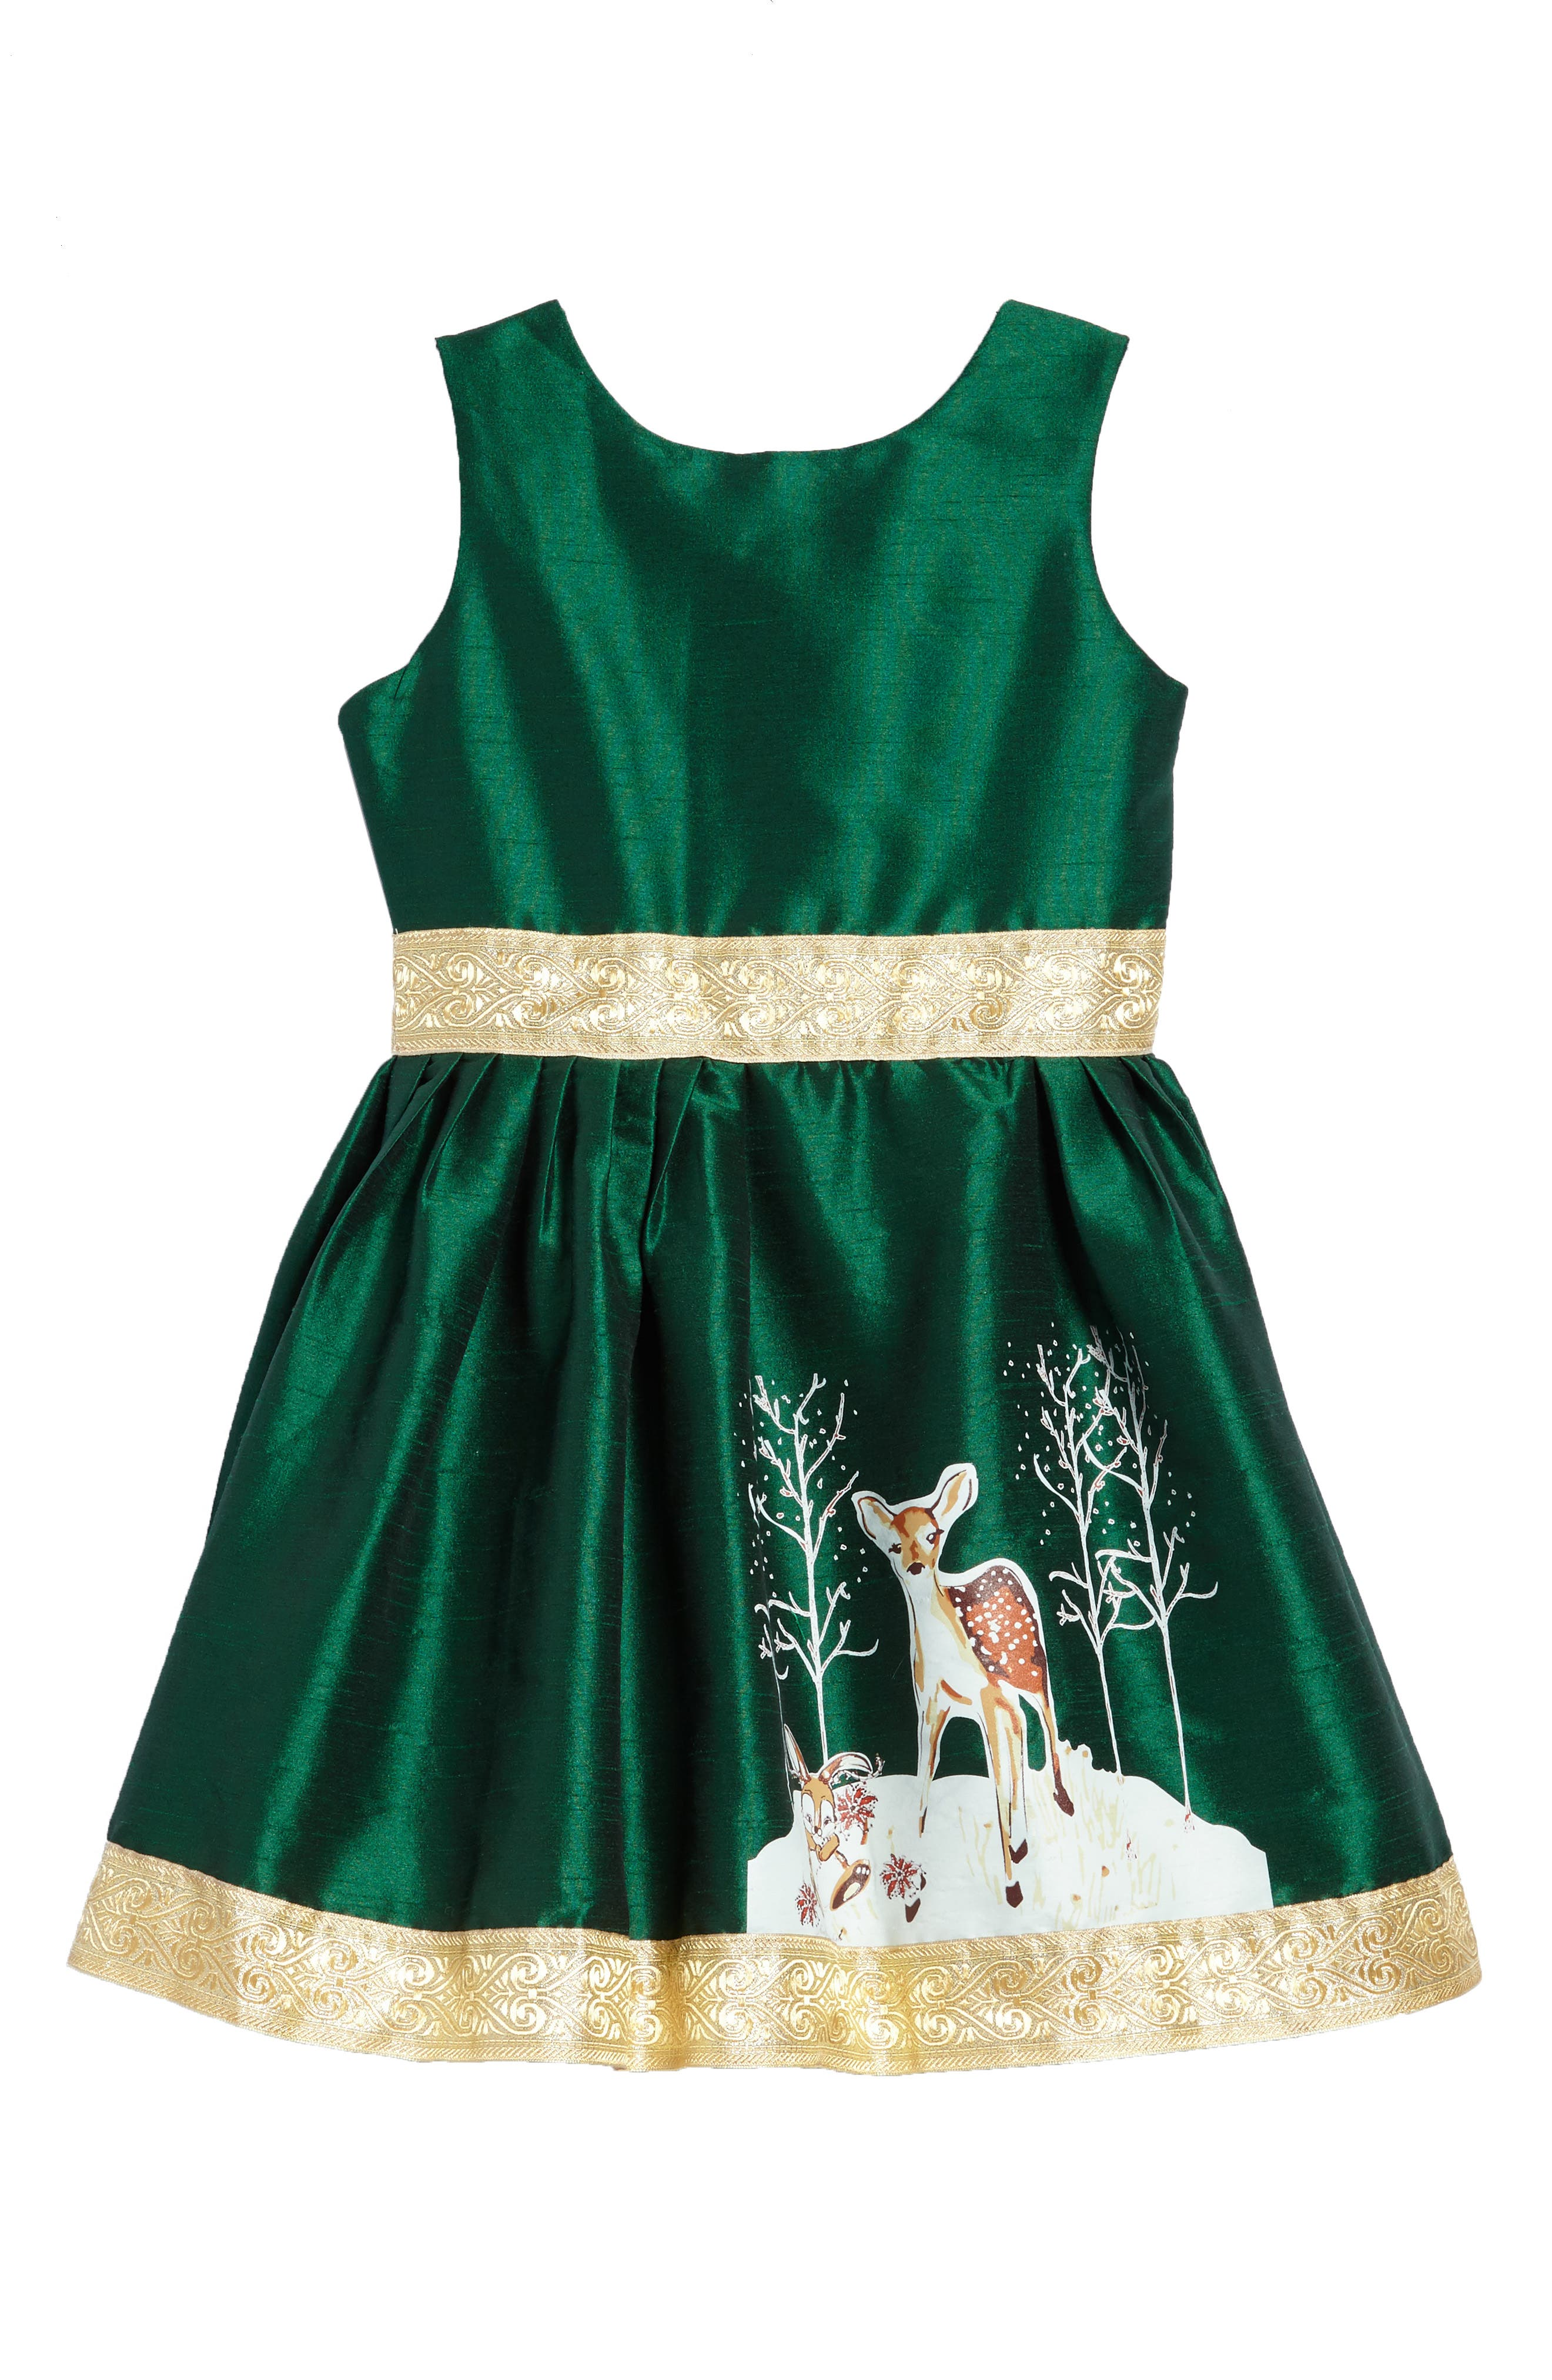 Fawn of Winter Dress,                         Main,                         color, Green